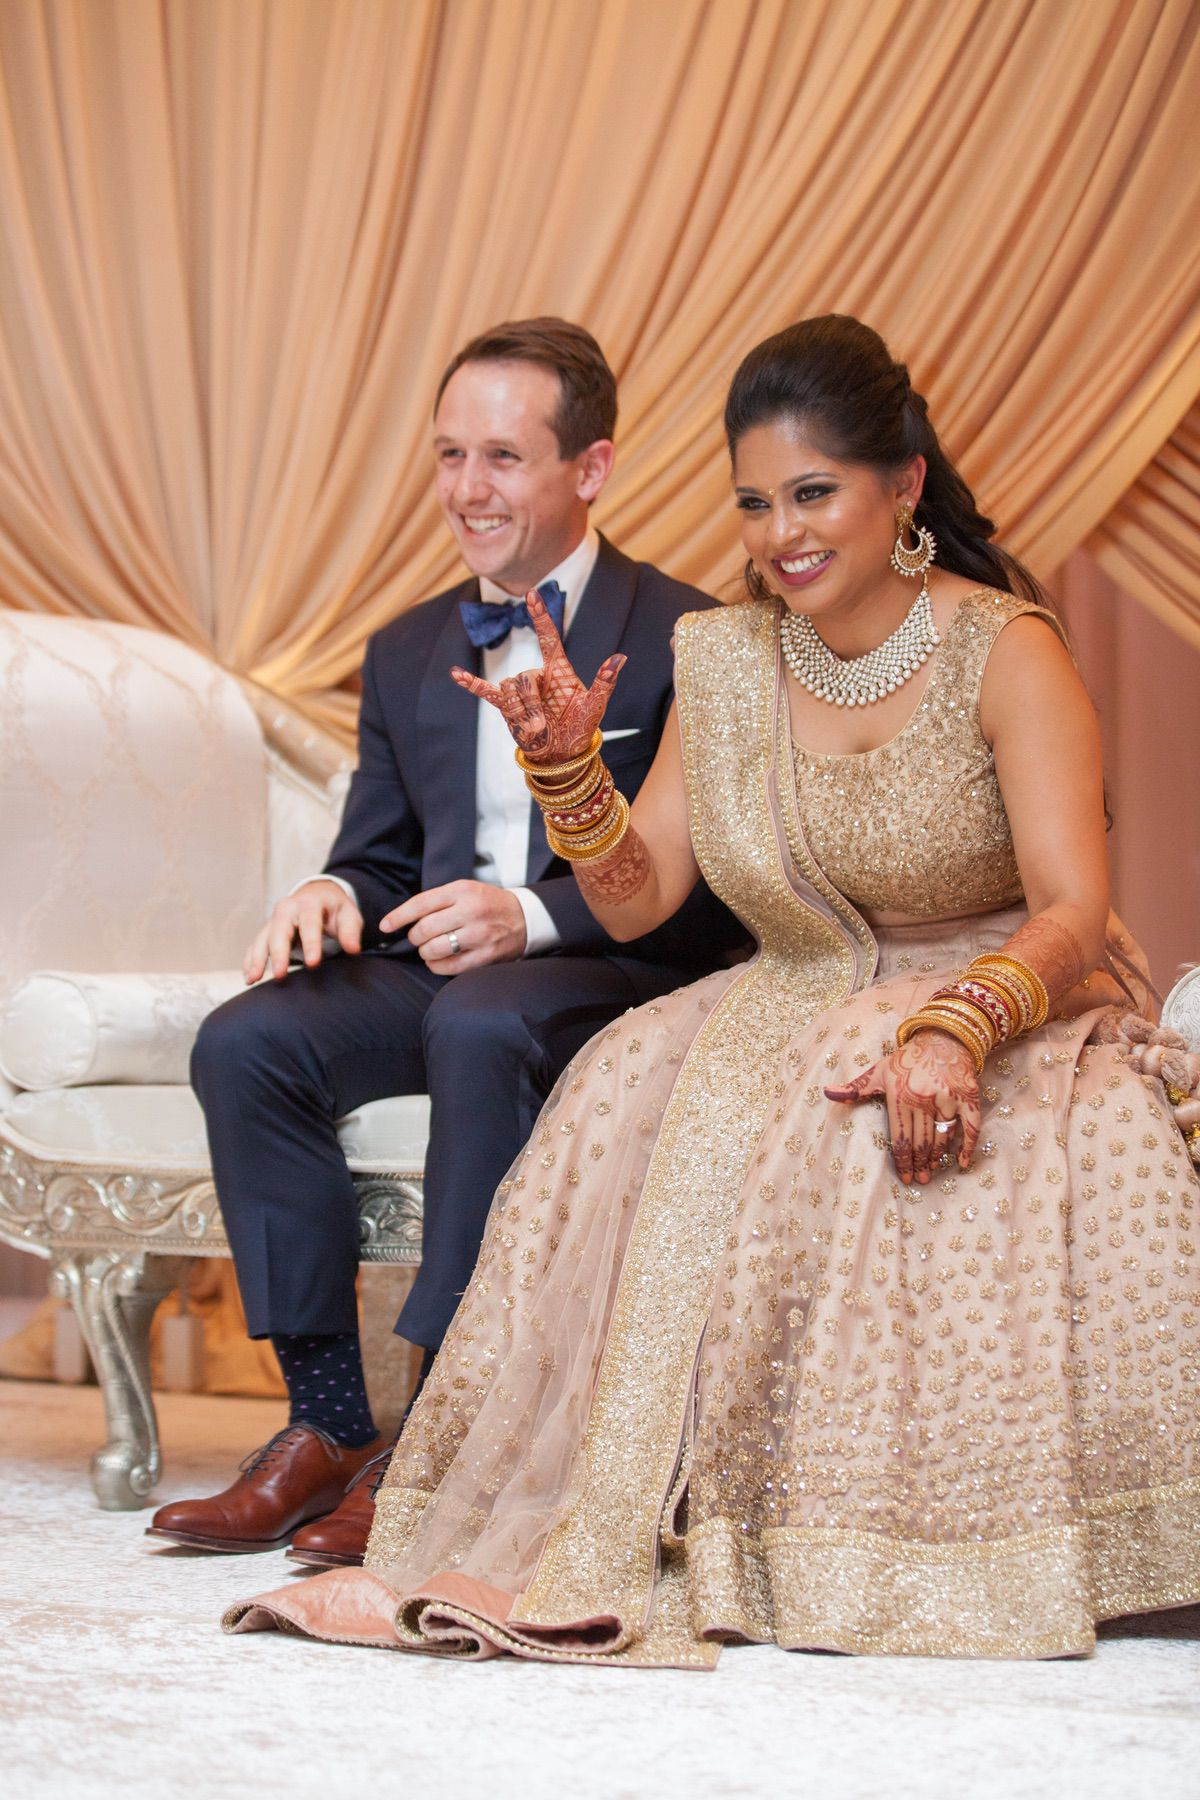 Le Cape Weddings - South Asian Wedding - Trisha and Jordan - Reception -95.jpg